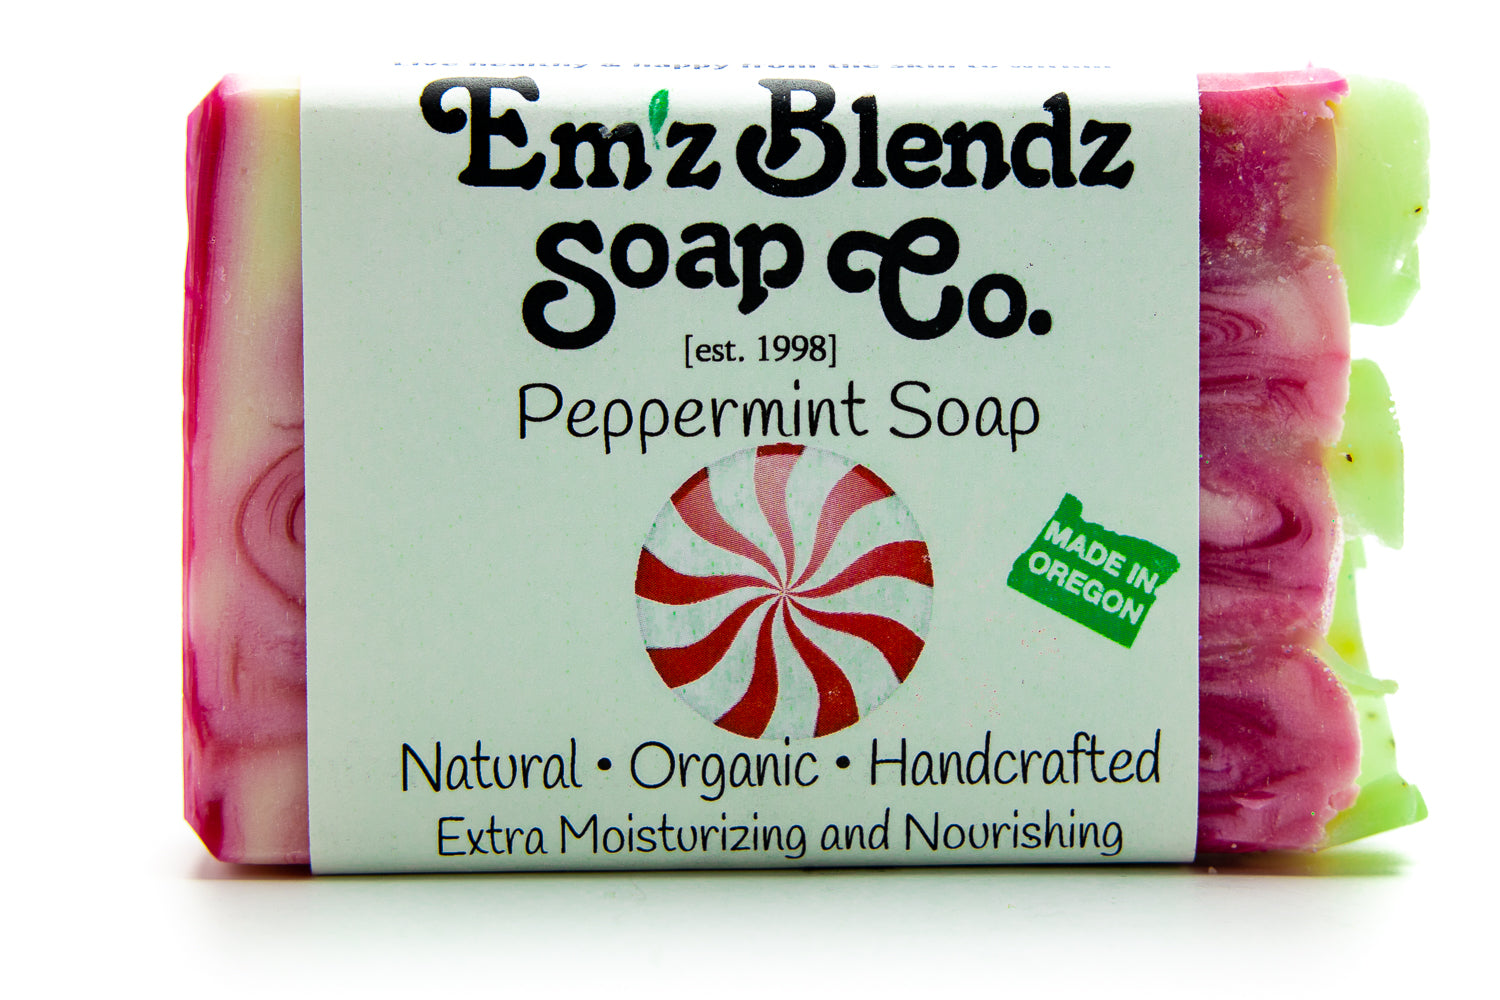 Peppermint Soap Bar - Emz Blendz